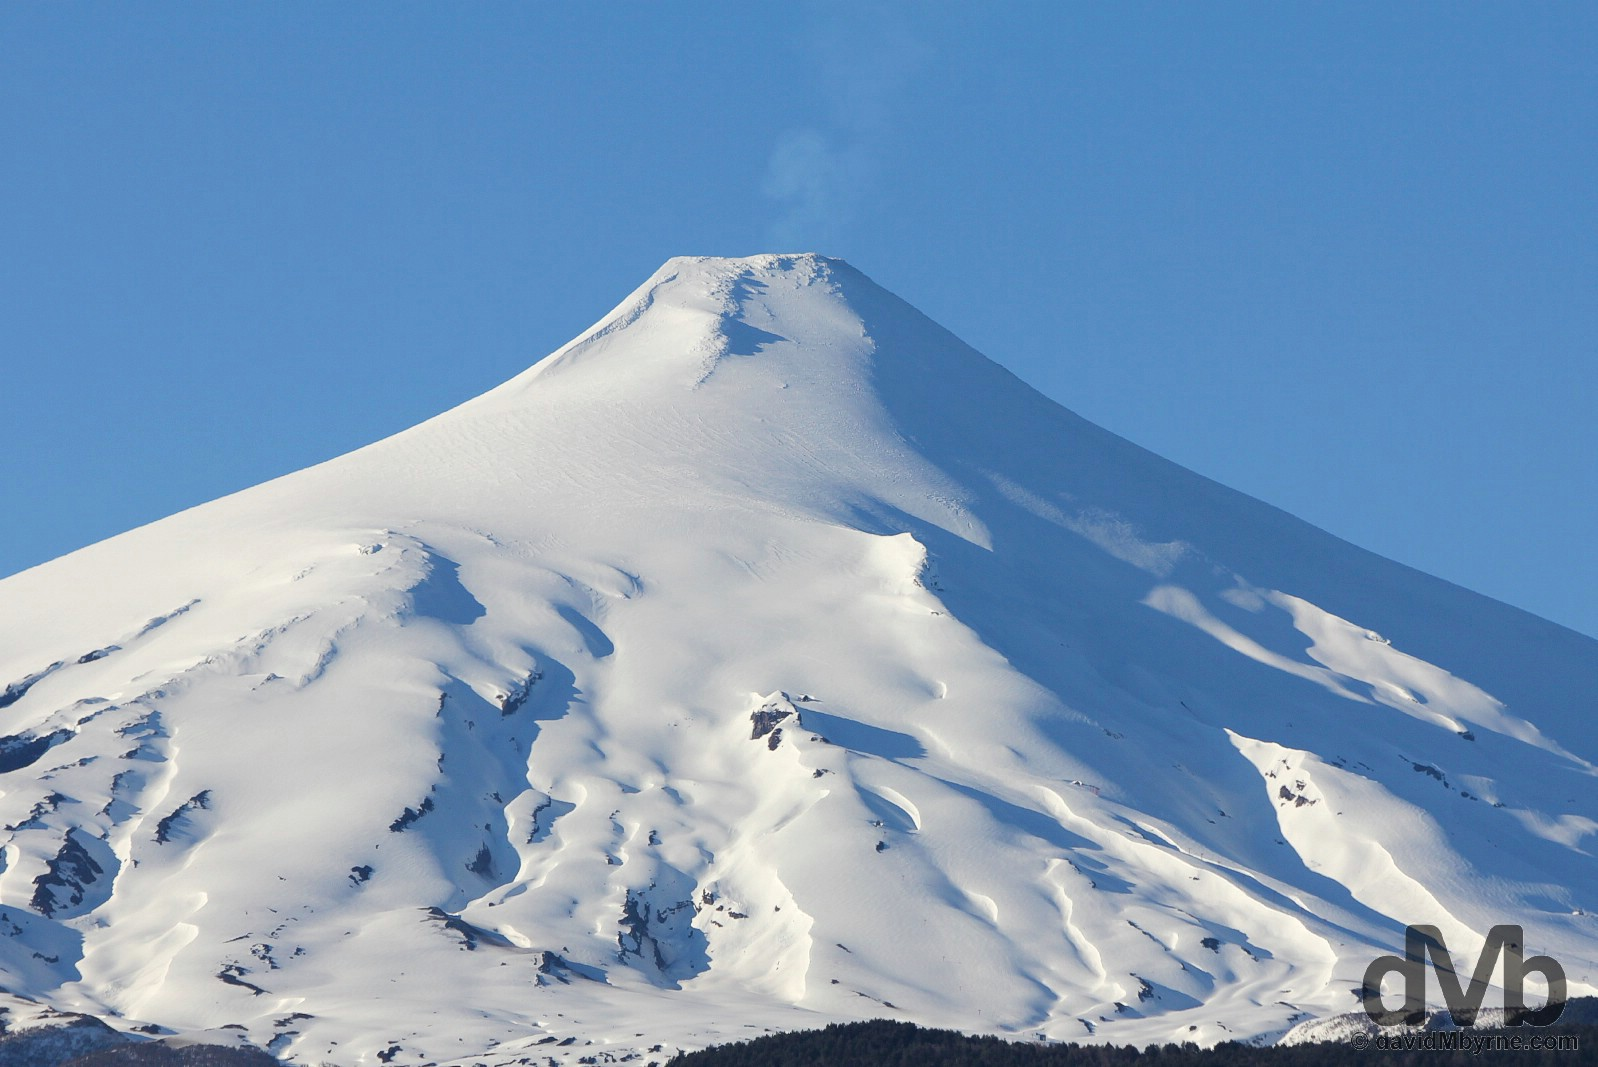 Steaming Volcan Villarrica as seen from Pucon, Lake District, Chile. October 11, 2015.